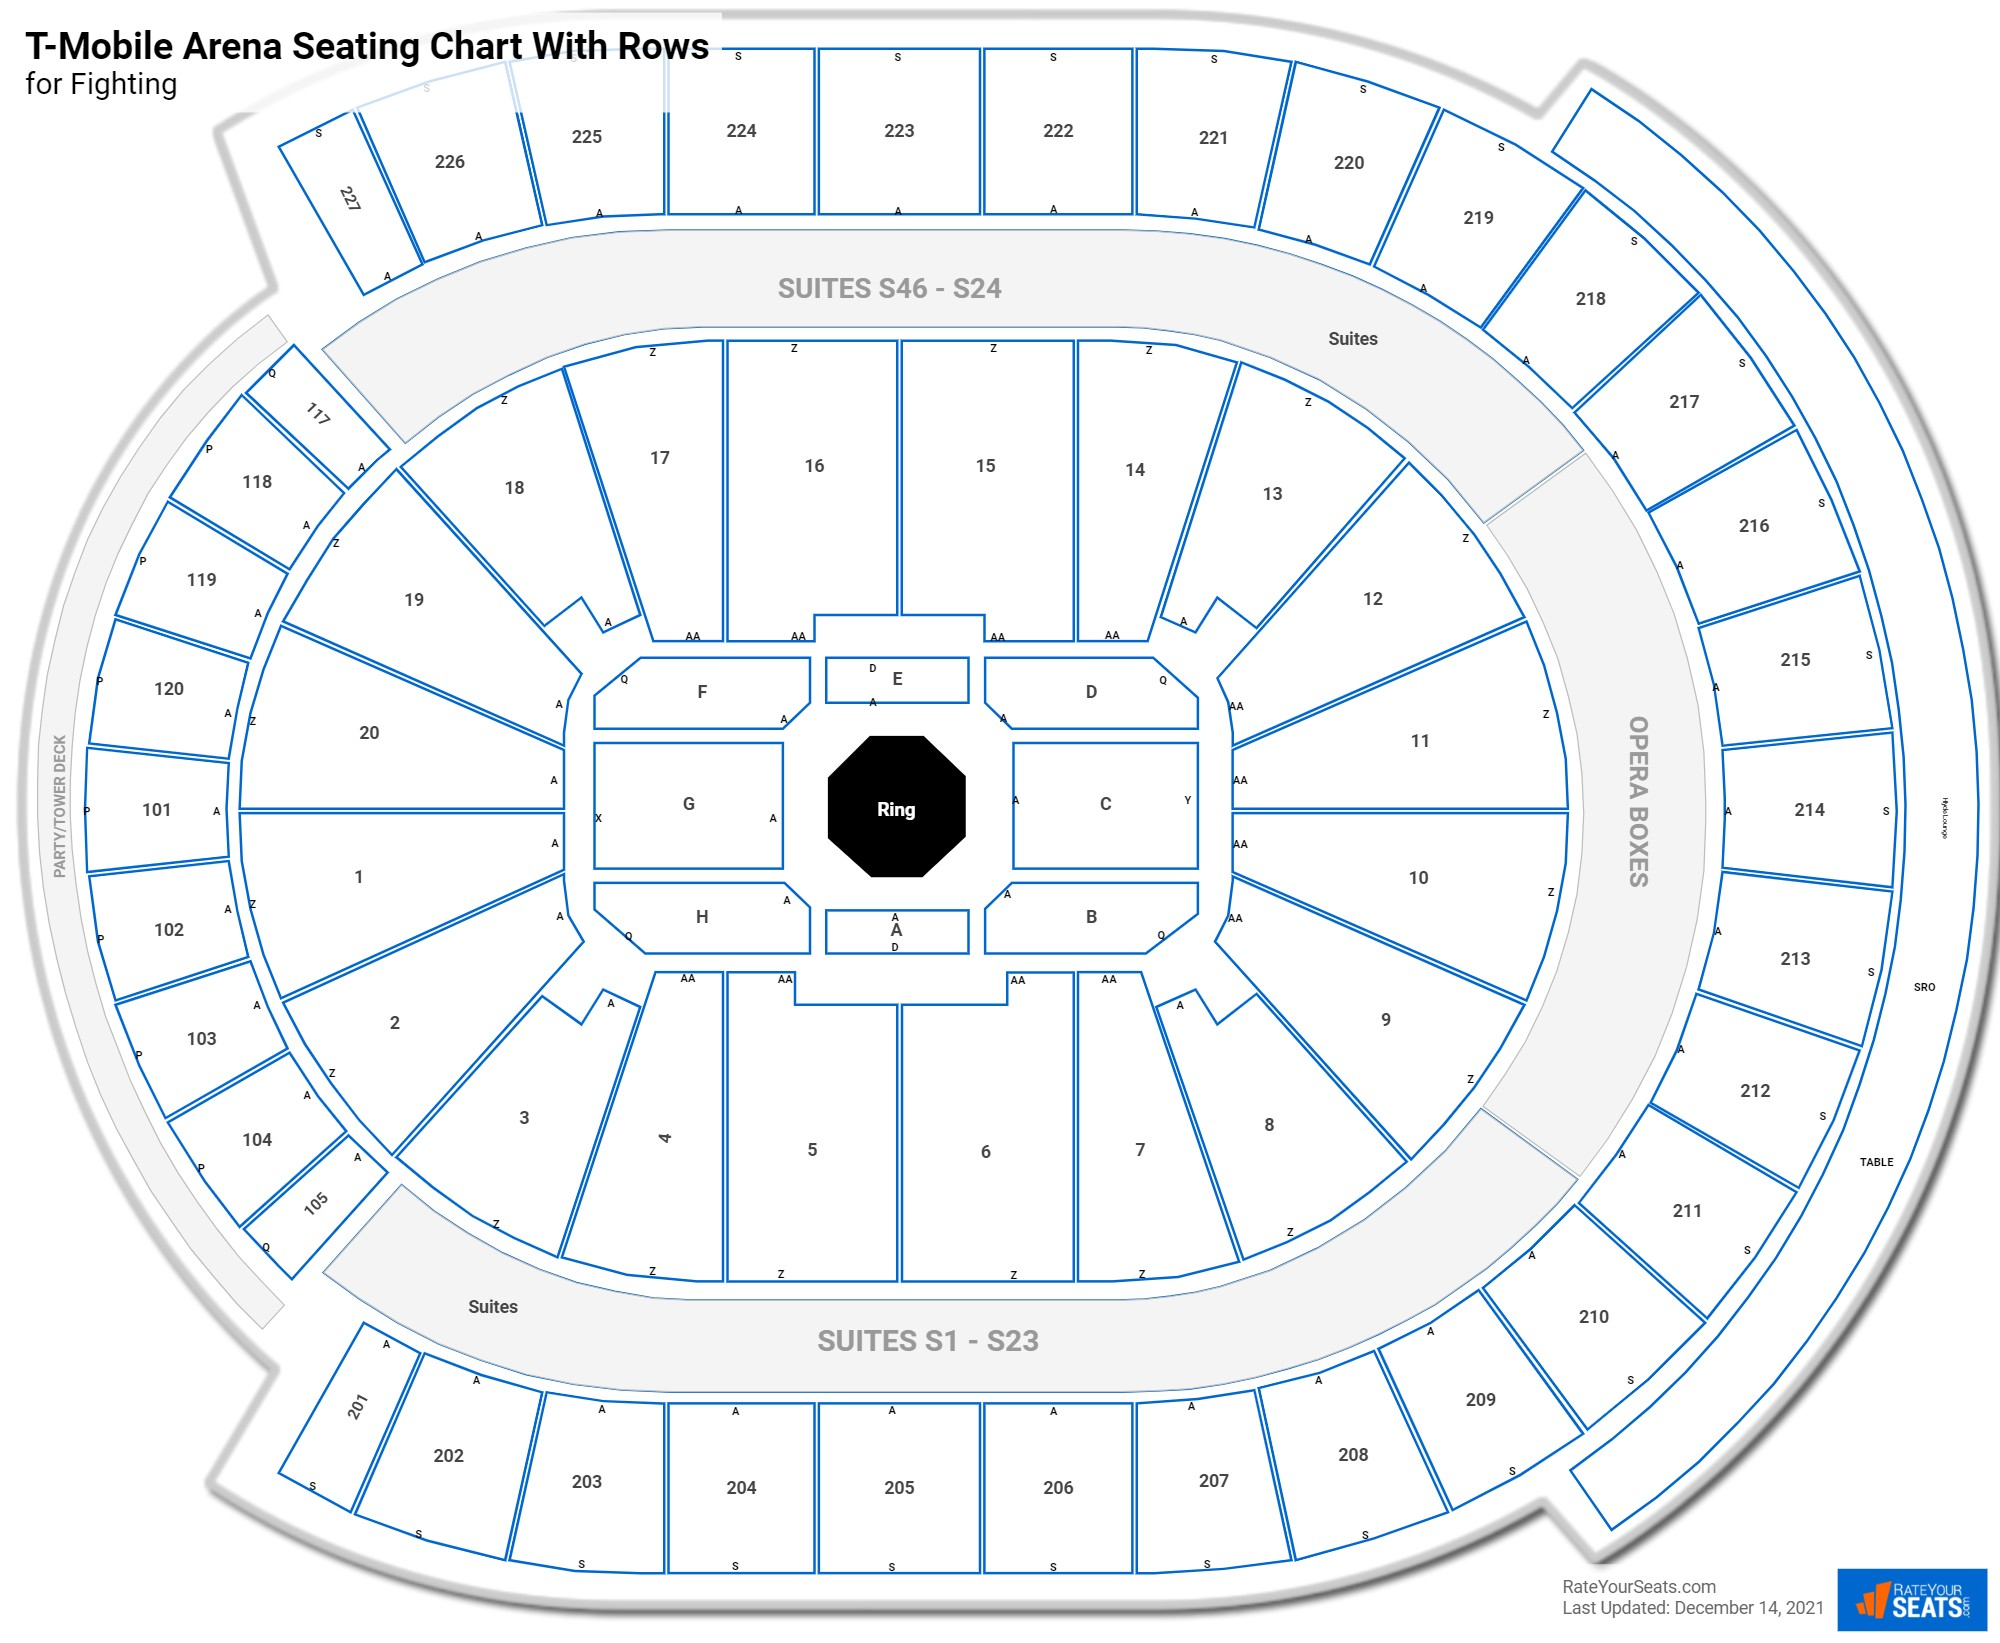 T-Mobile Arena seating chart with rows fighting